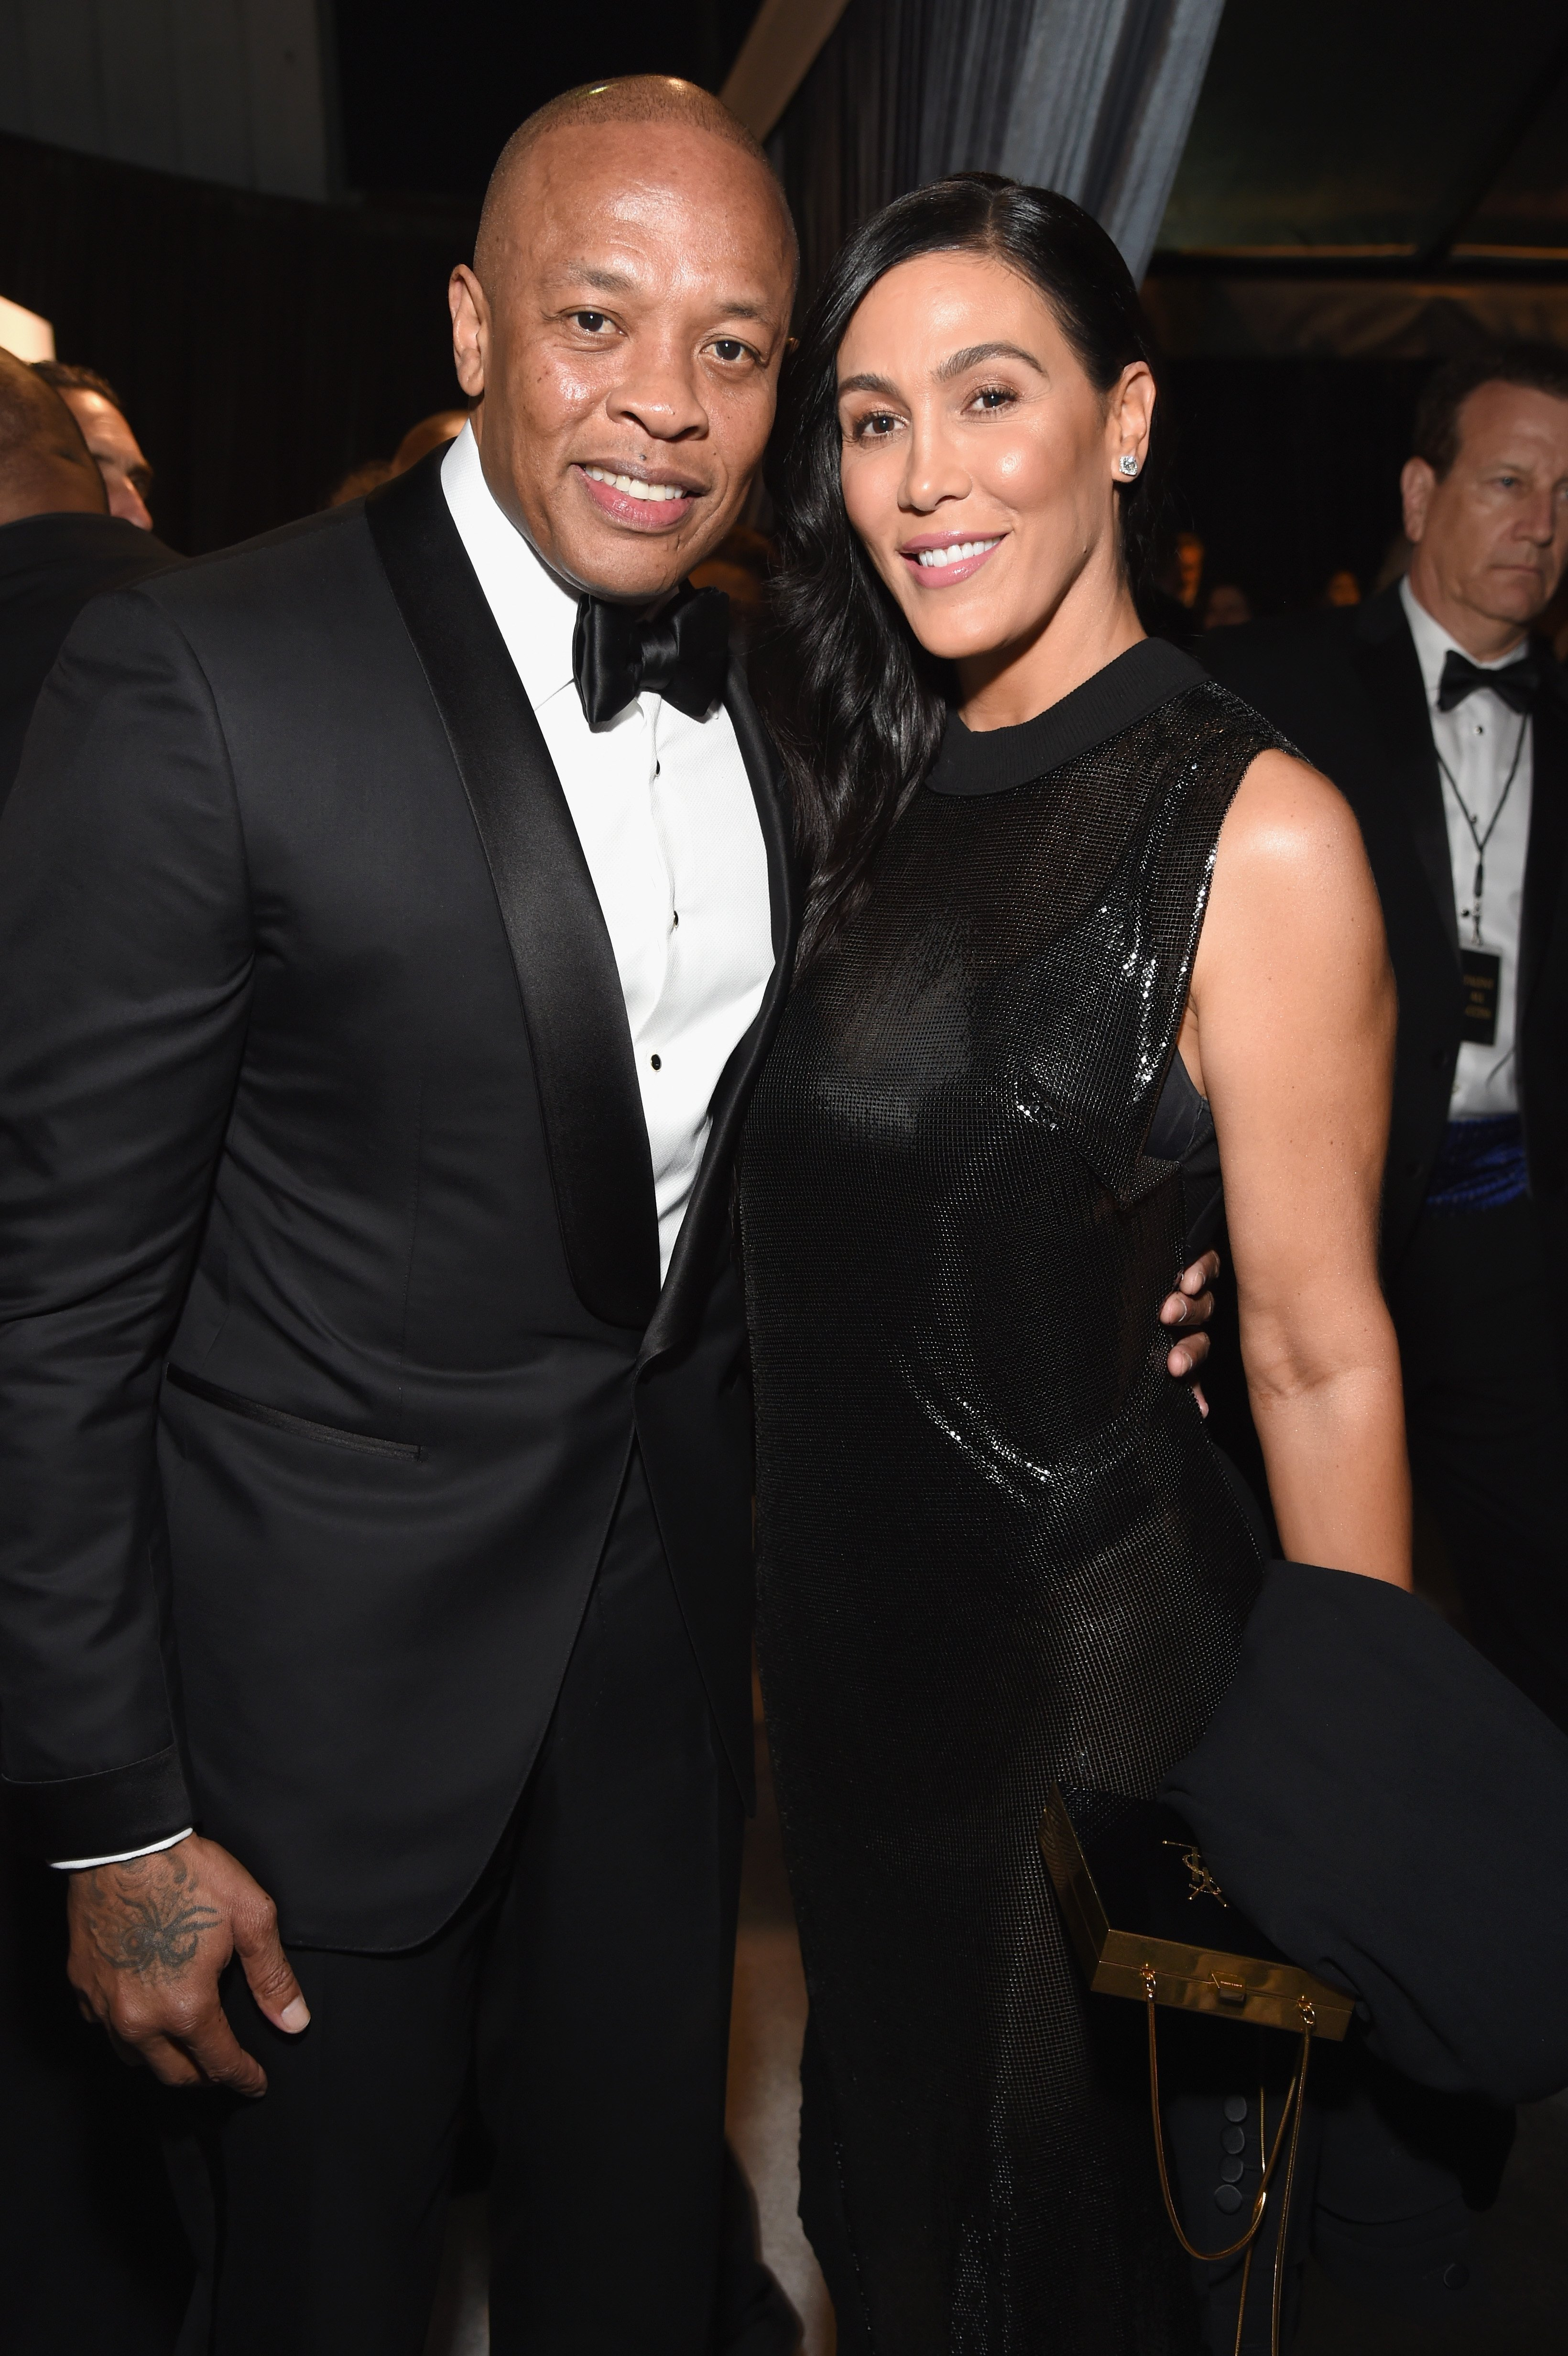 Dr. Dre and wife, Nicole Young during better times at the City of Hope Spirit of Life Gala on October 11, 2018 in Santa Monica. | Source: Getty Images.